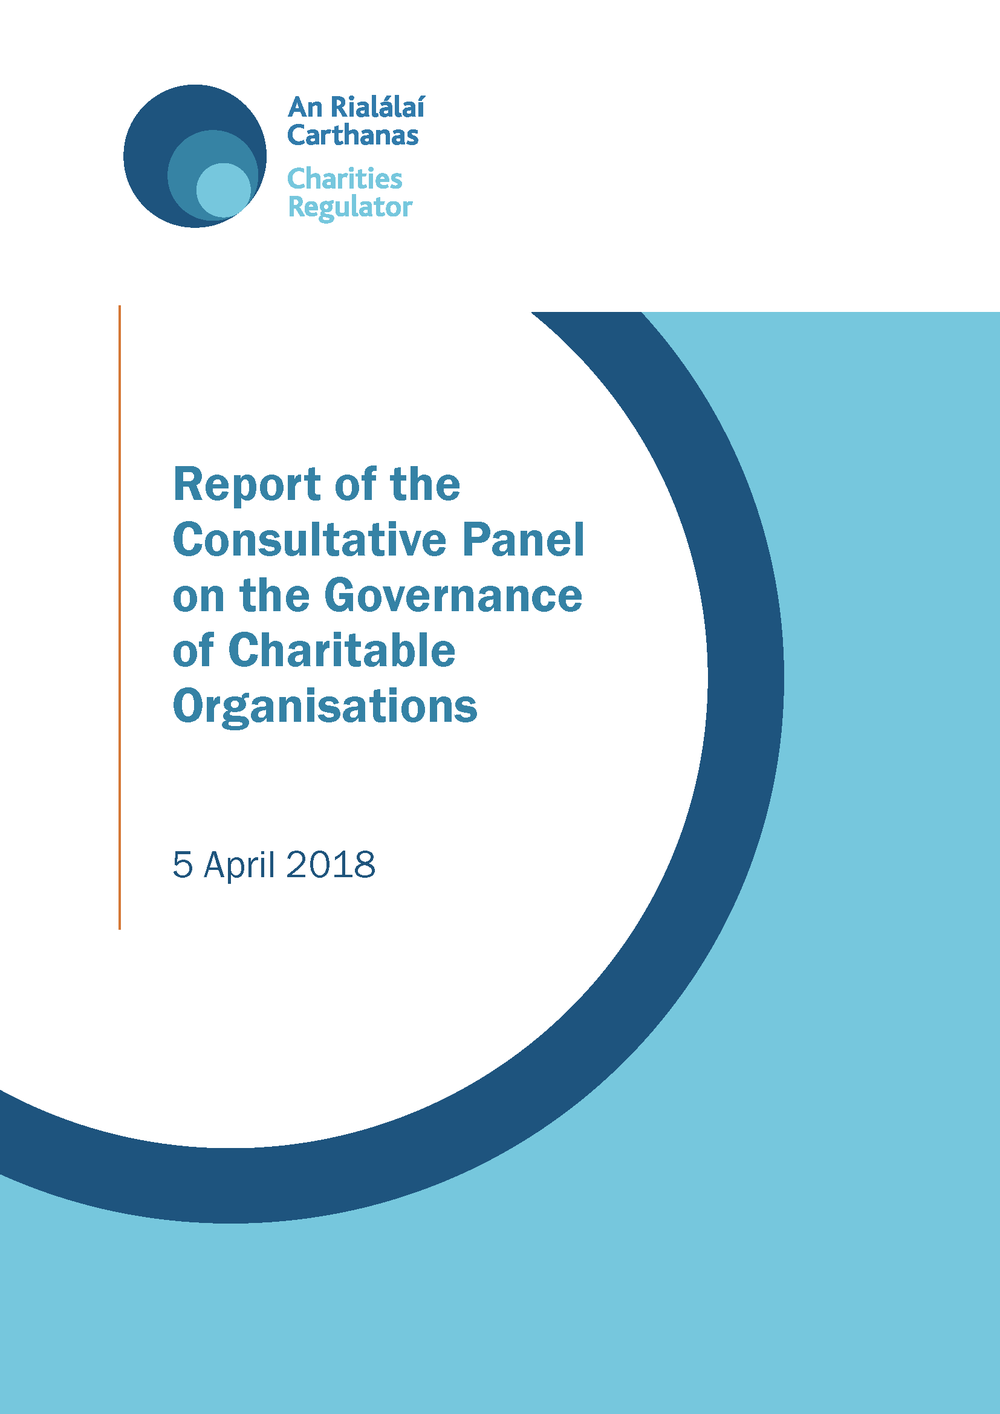 Report of the Consultative Panel on the Governance of Charitable Organisations May 2018_FrontPage.png